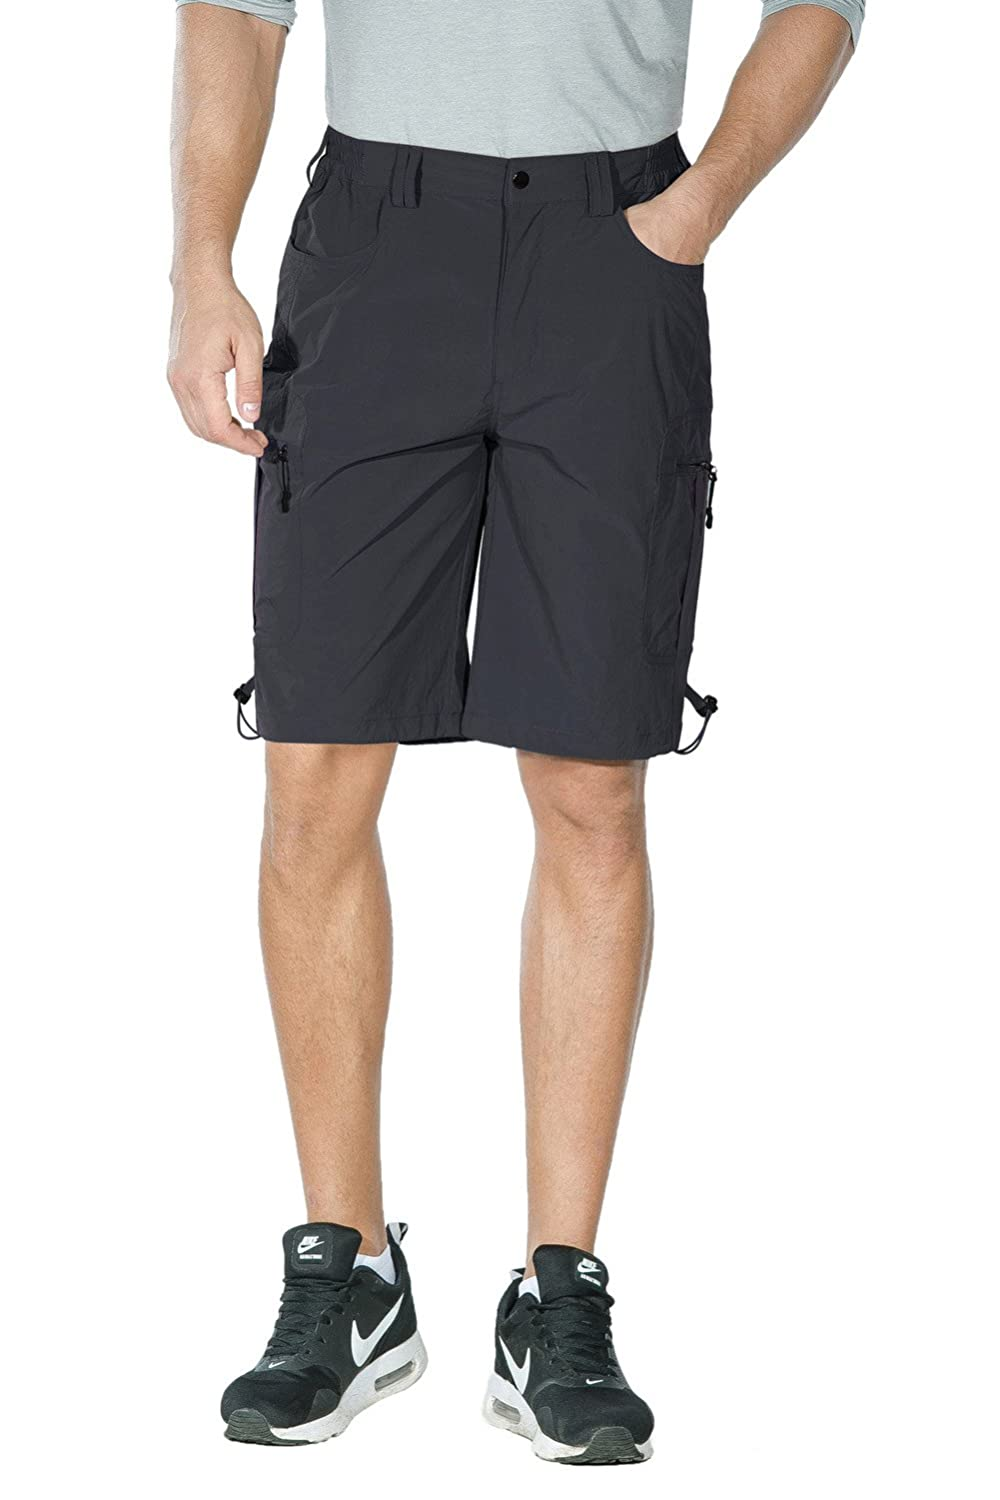 Unitop Men's Lightweight Breathable Soft Quick Dry Hiking Cargo Shorts UT7115005